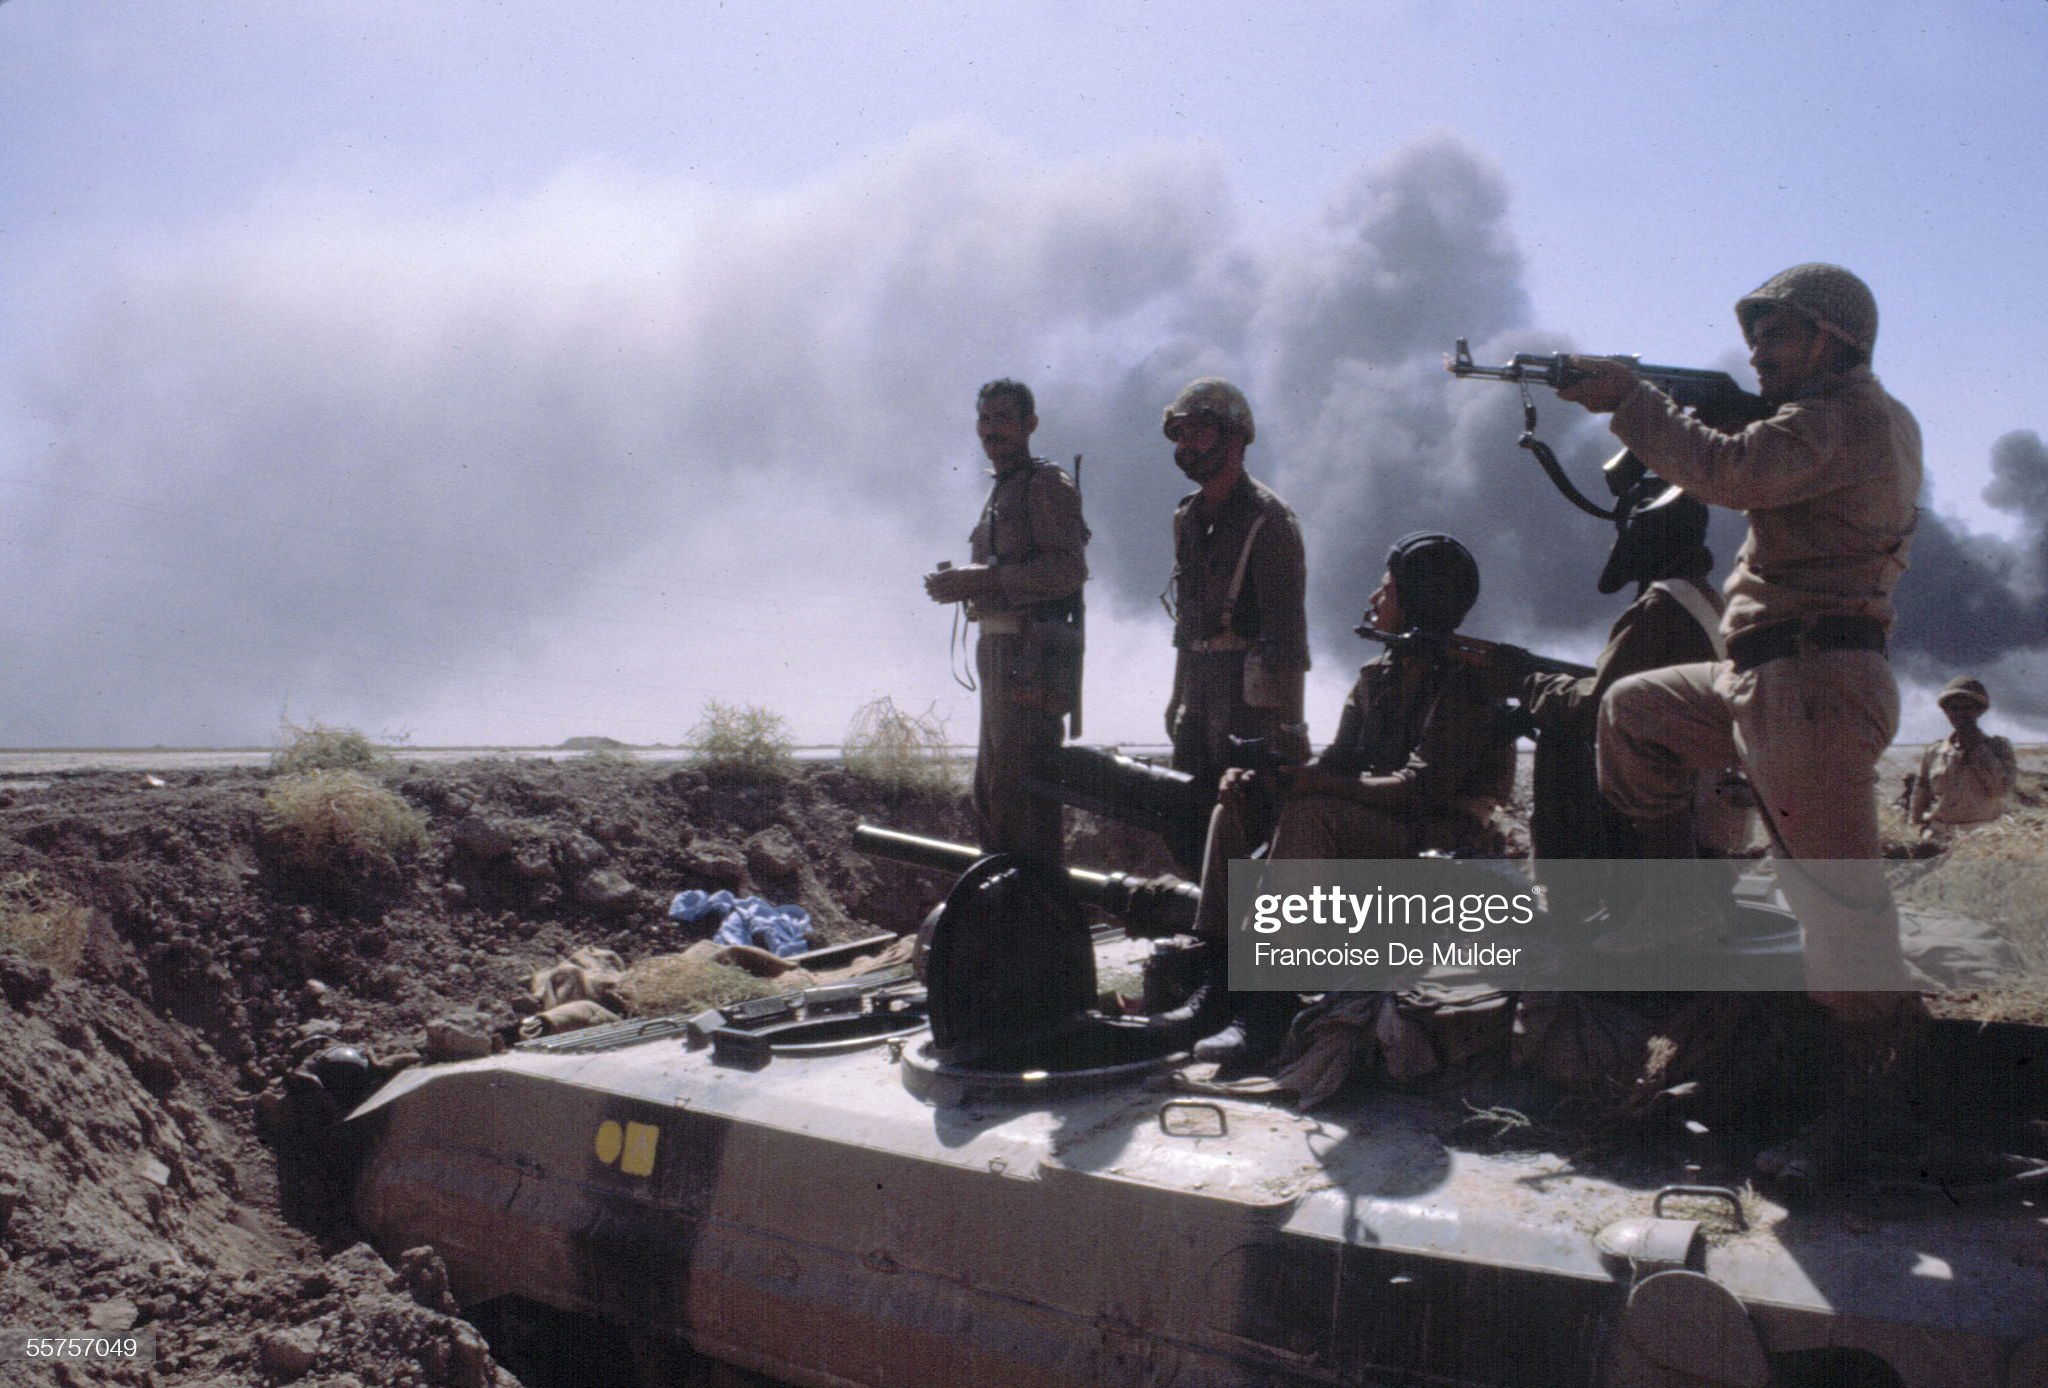 https://media.gettyimages.com/photos/war-iran-iraq-khorramchahrs-forehead-armed-iraqi-on-1980-fdm9308-picture-id55757049?s=2048x2048